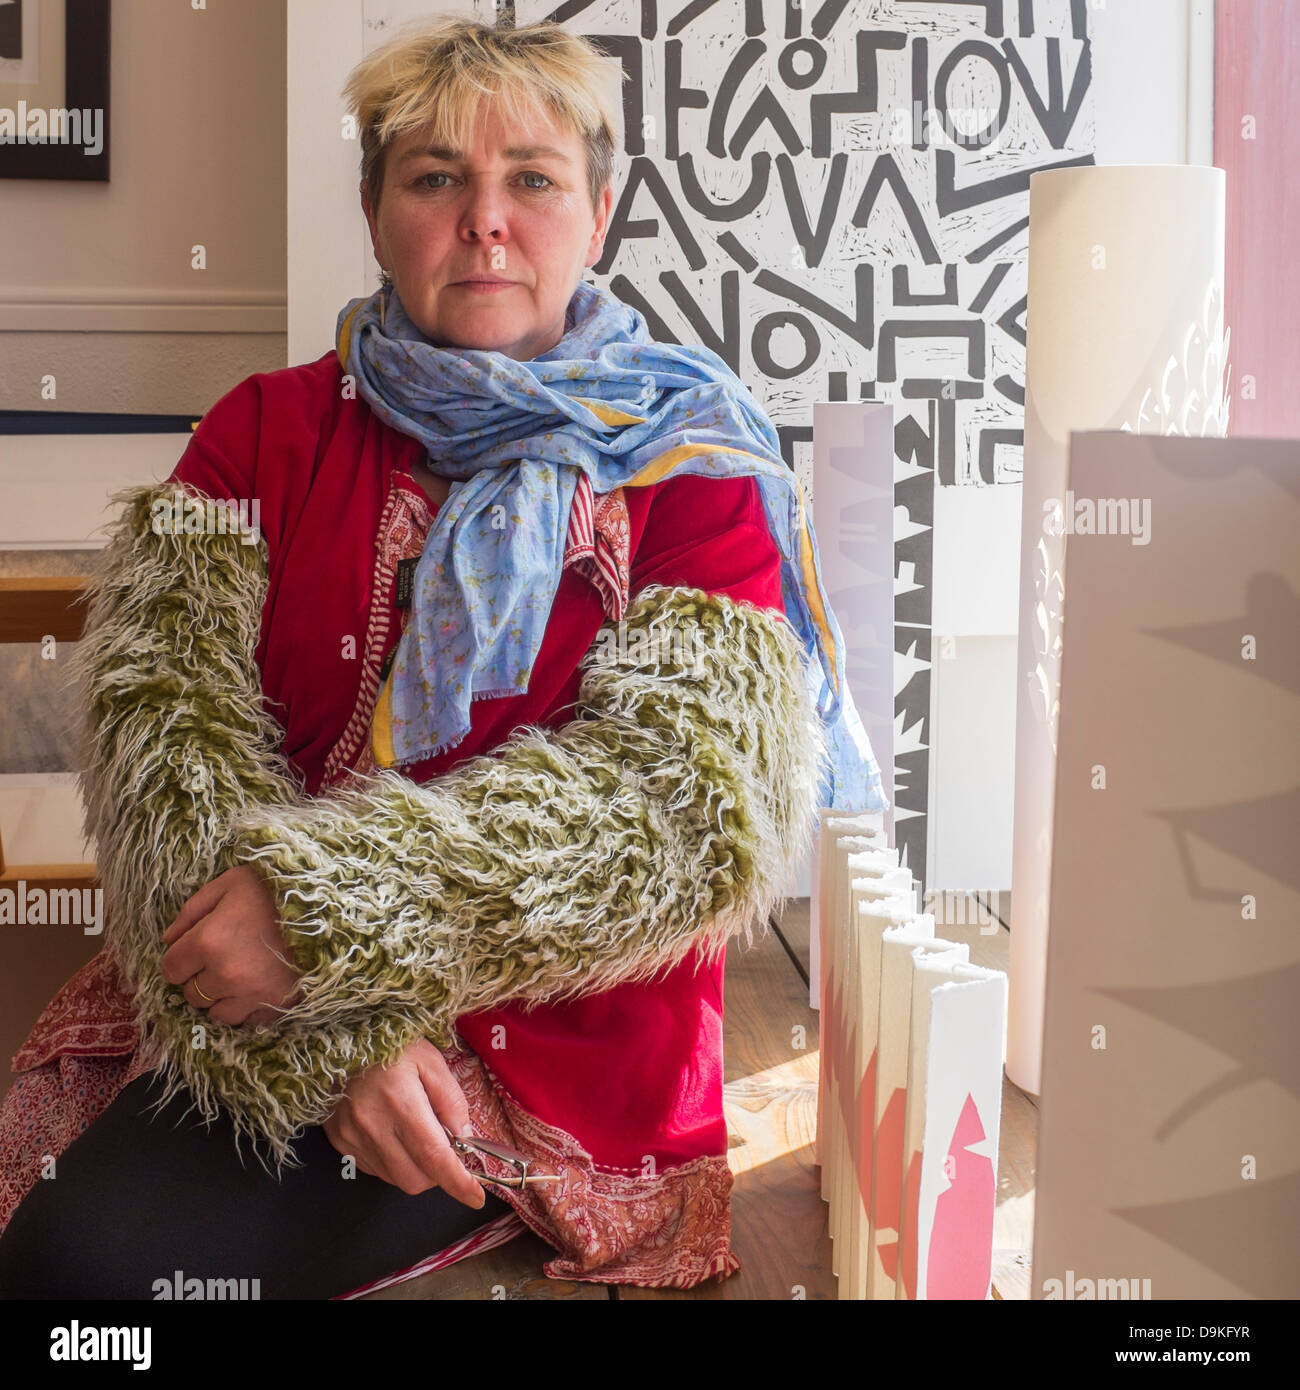 Welsh visual artist RUTH JEN EVANS, with some of her work at Oriel y Bont, Aberystwyth Wales UK - Stock Image